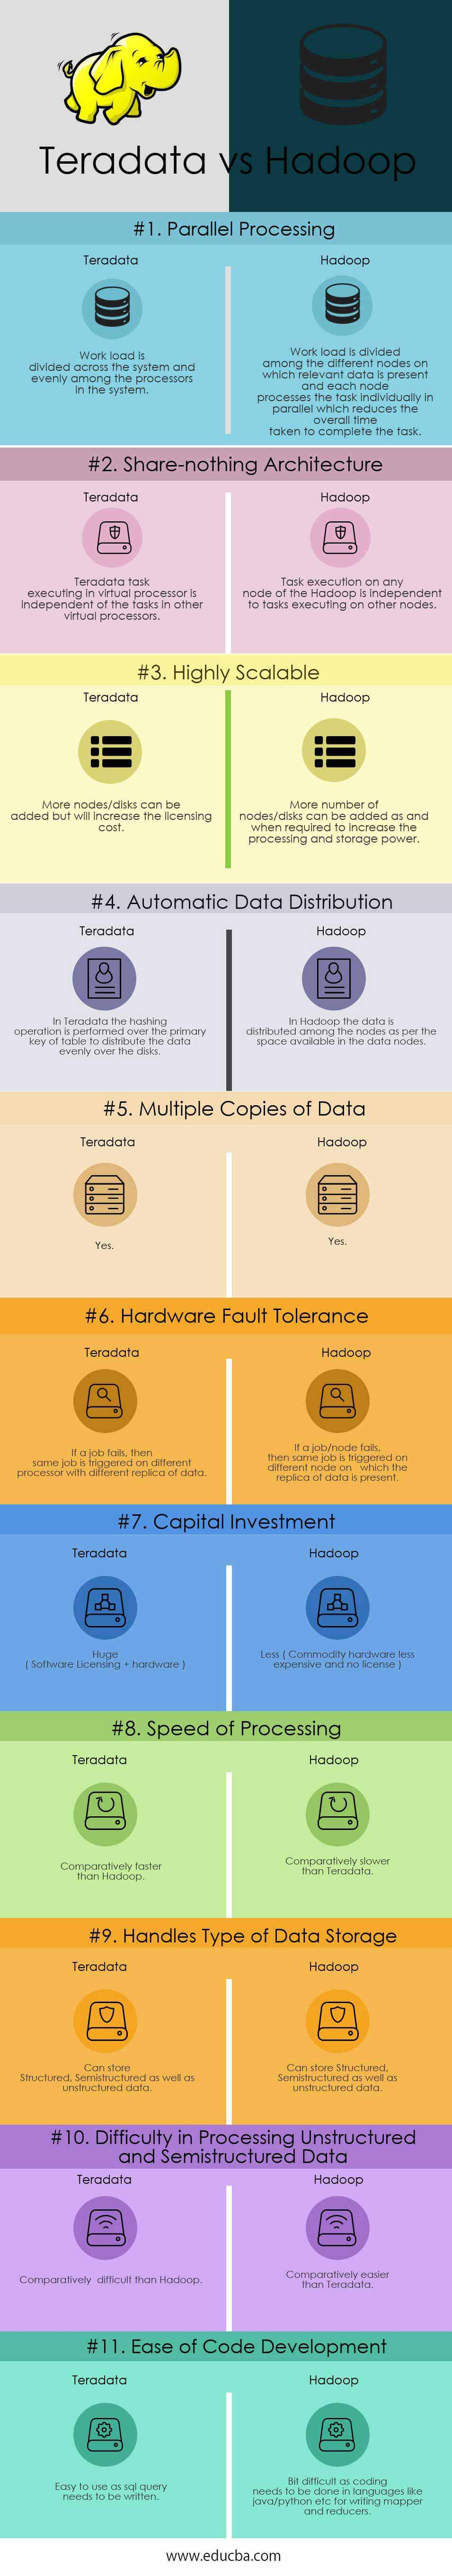 Hadoop vs Teradata -11 Best Useful Differences To Learn